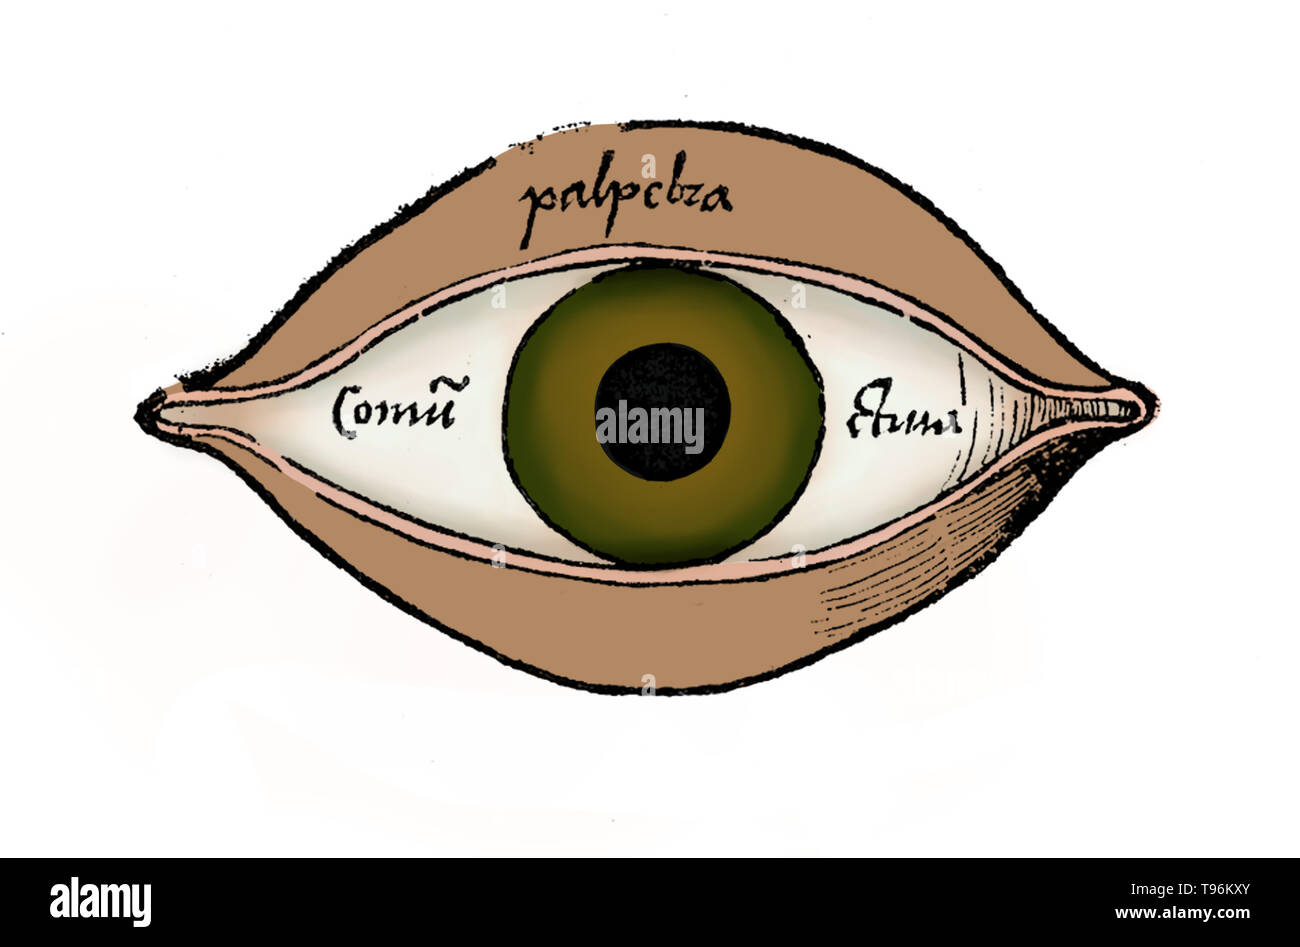 Diagram of the eye from Margarita philosophica by Gregor Reisch (1467-1525) was a German Carthusian humanist writer. His chief work is the Margarita philosophica, which first appeared at Freiburg in 1503. It is an encyclopedia of knowledge intended as a textbook for students, and contains in twelve books Latin grammar, dialectics, rhetoric, arithmetic, music, geometry, astronomy, physics, natural history, physiology, psychology, and ethics. The usefulness of the work was increased by numerous woodcuts and a full index. - Stock Image